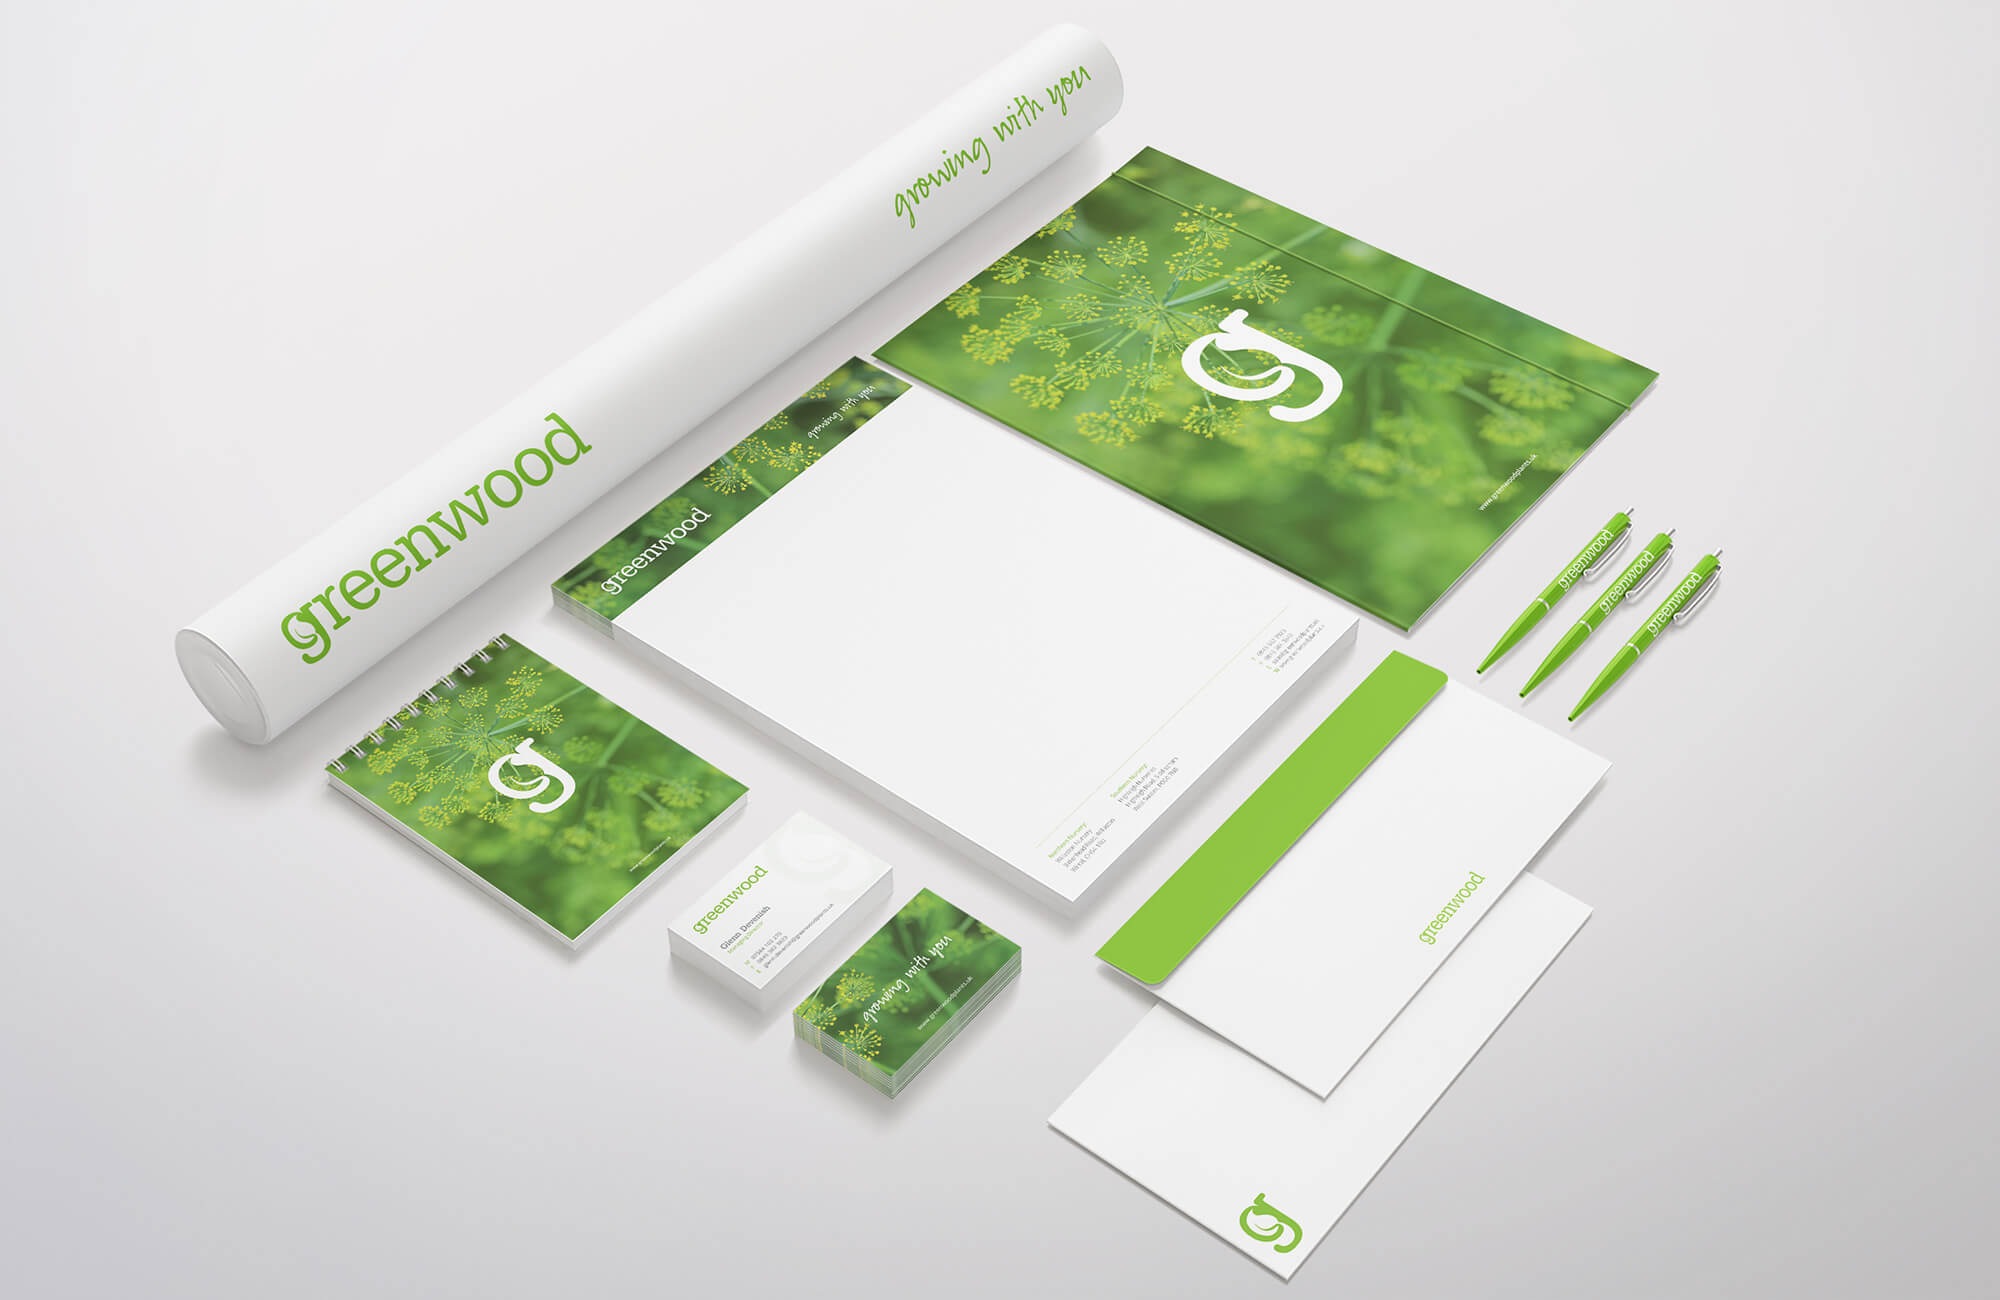 Greenwood Business Stationery Design Concepts